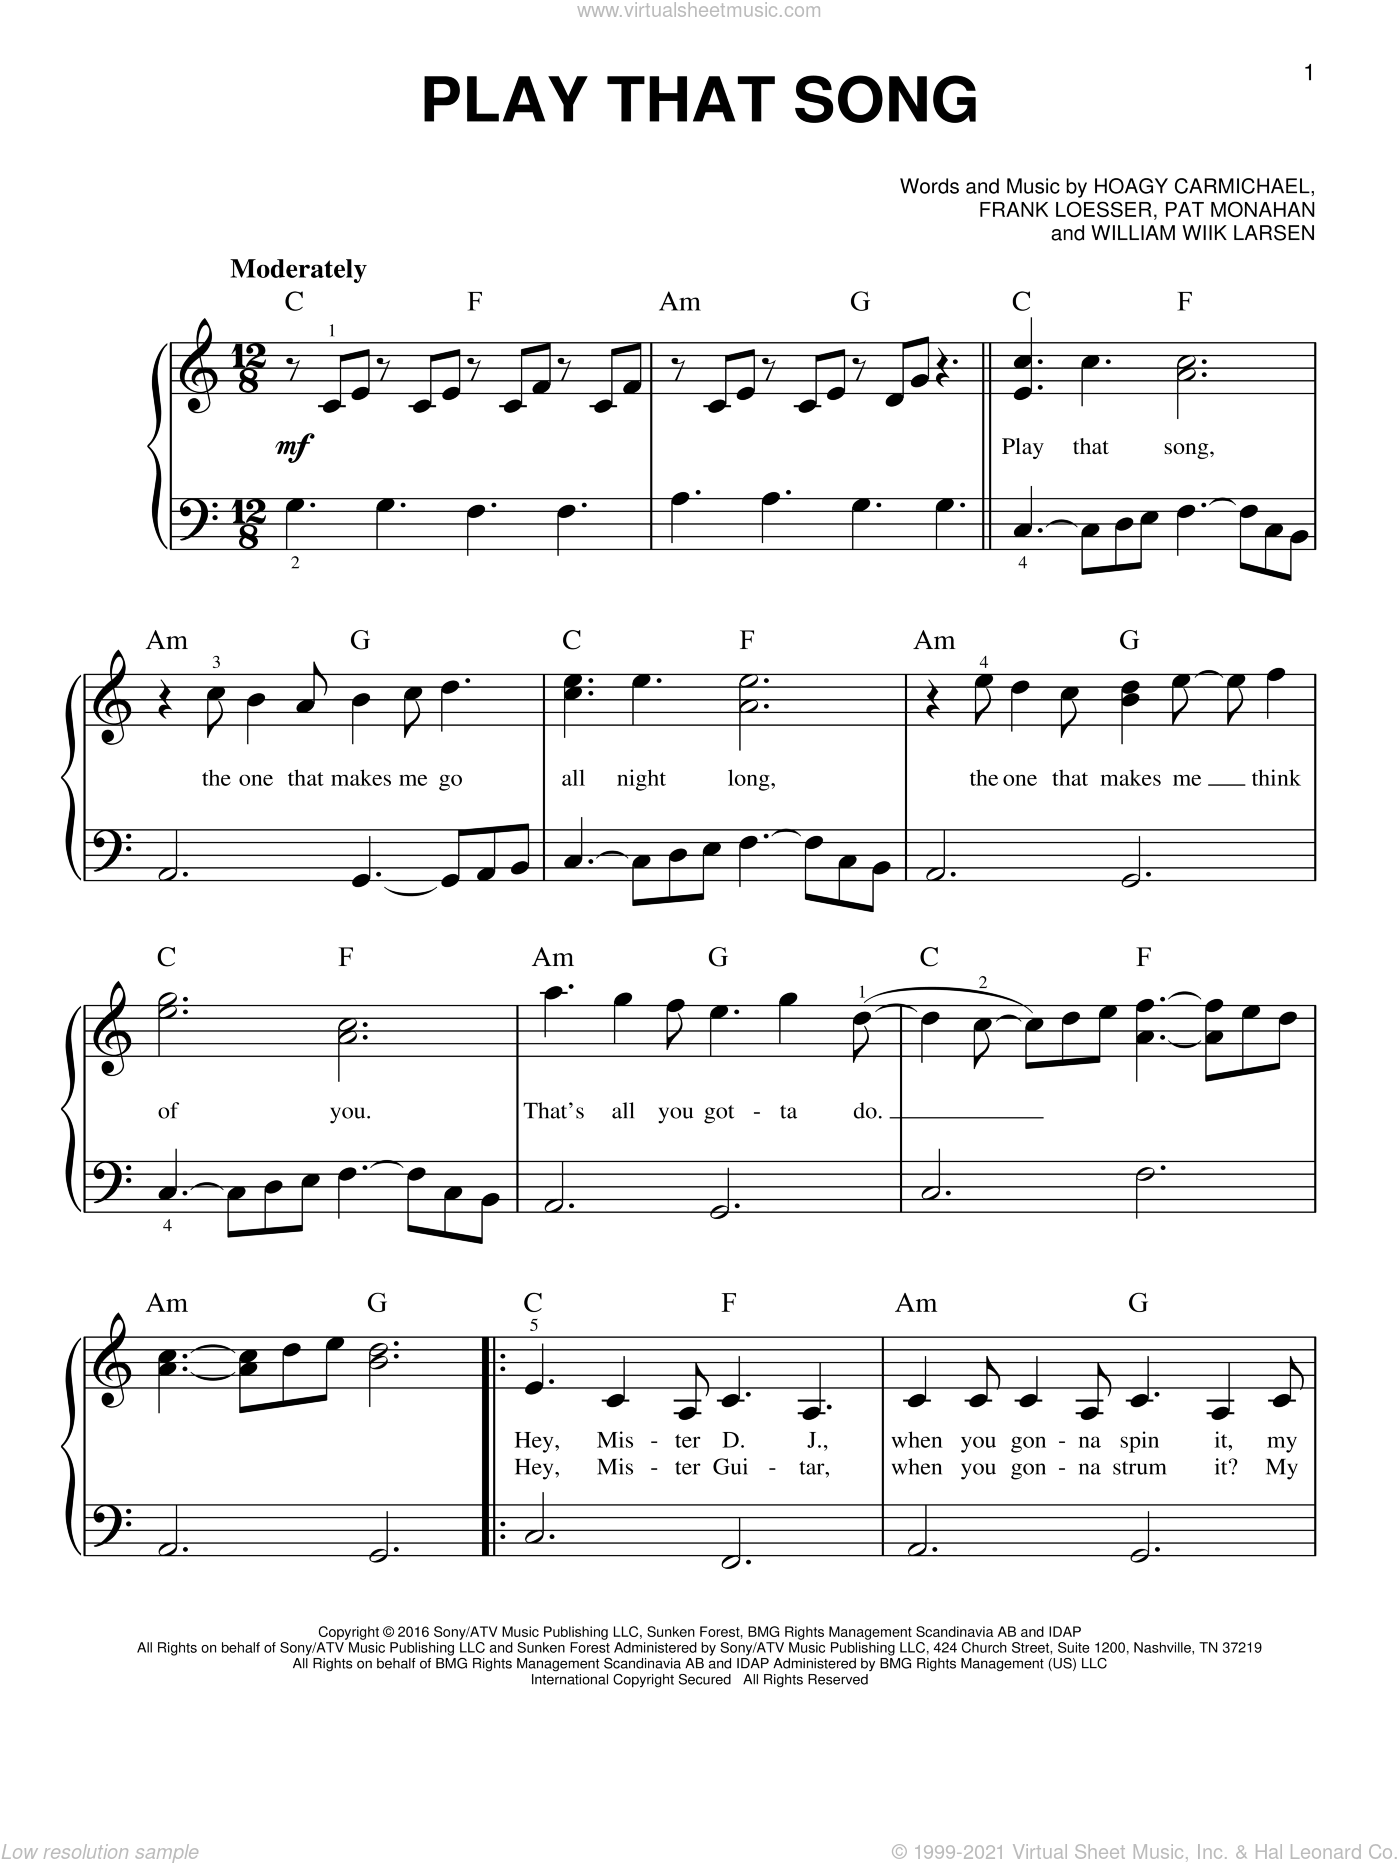 Play That Song sheet music for piano solo by Train, Frank Loesser, Hoagy Carmichael, Pat Monahan and William Larsen, easy skill level